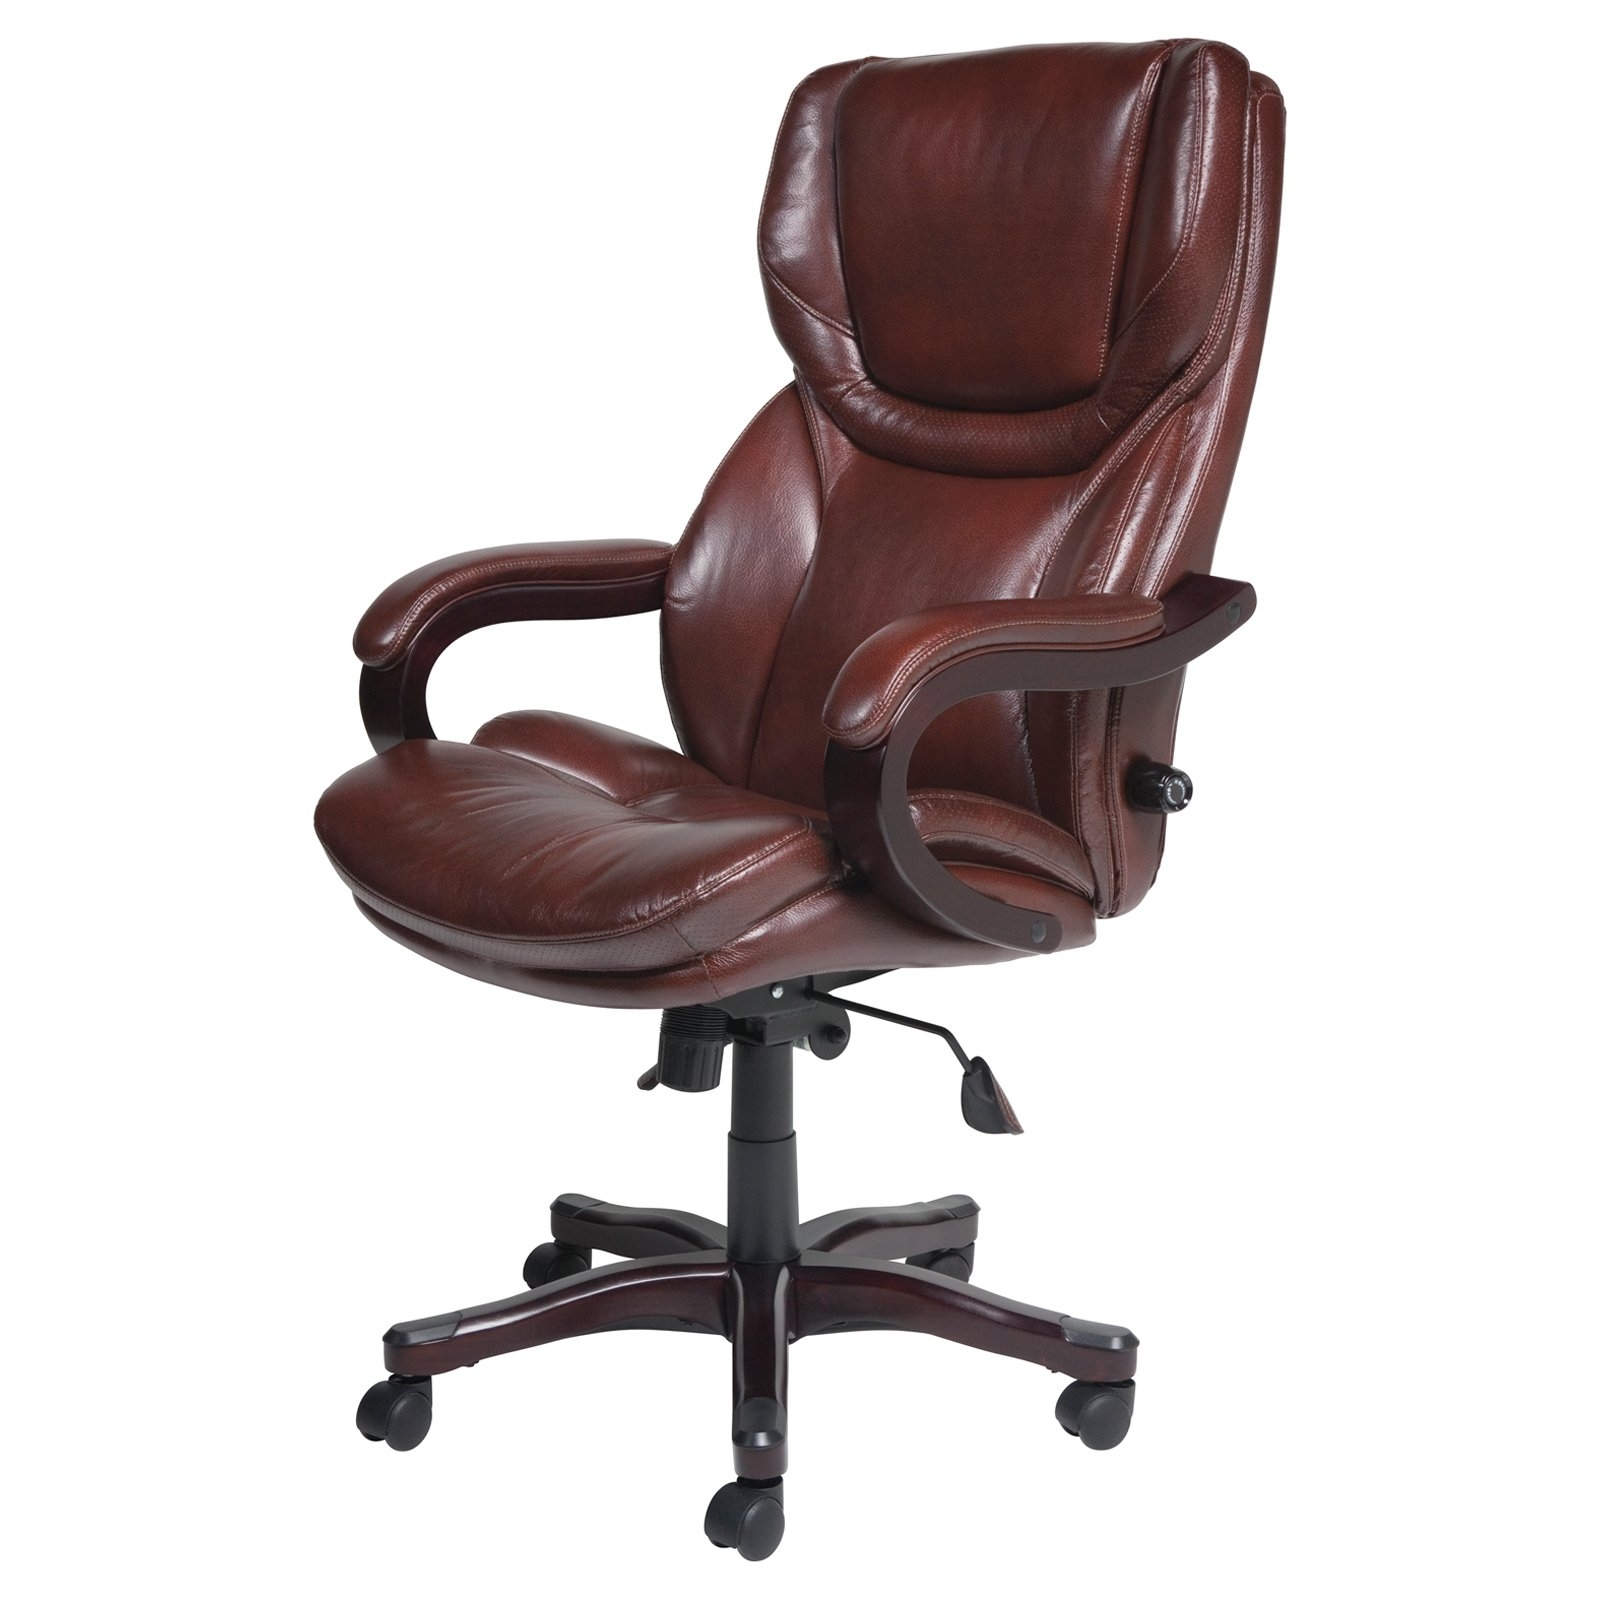 Most Recent Chair : Ergonomic Black Leather Executive Office Chair Verona For High End Executive Office Chairs (View 14 of 20)